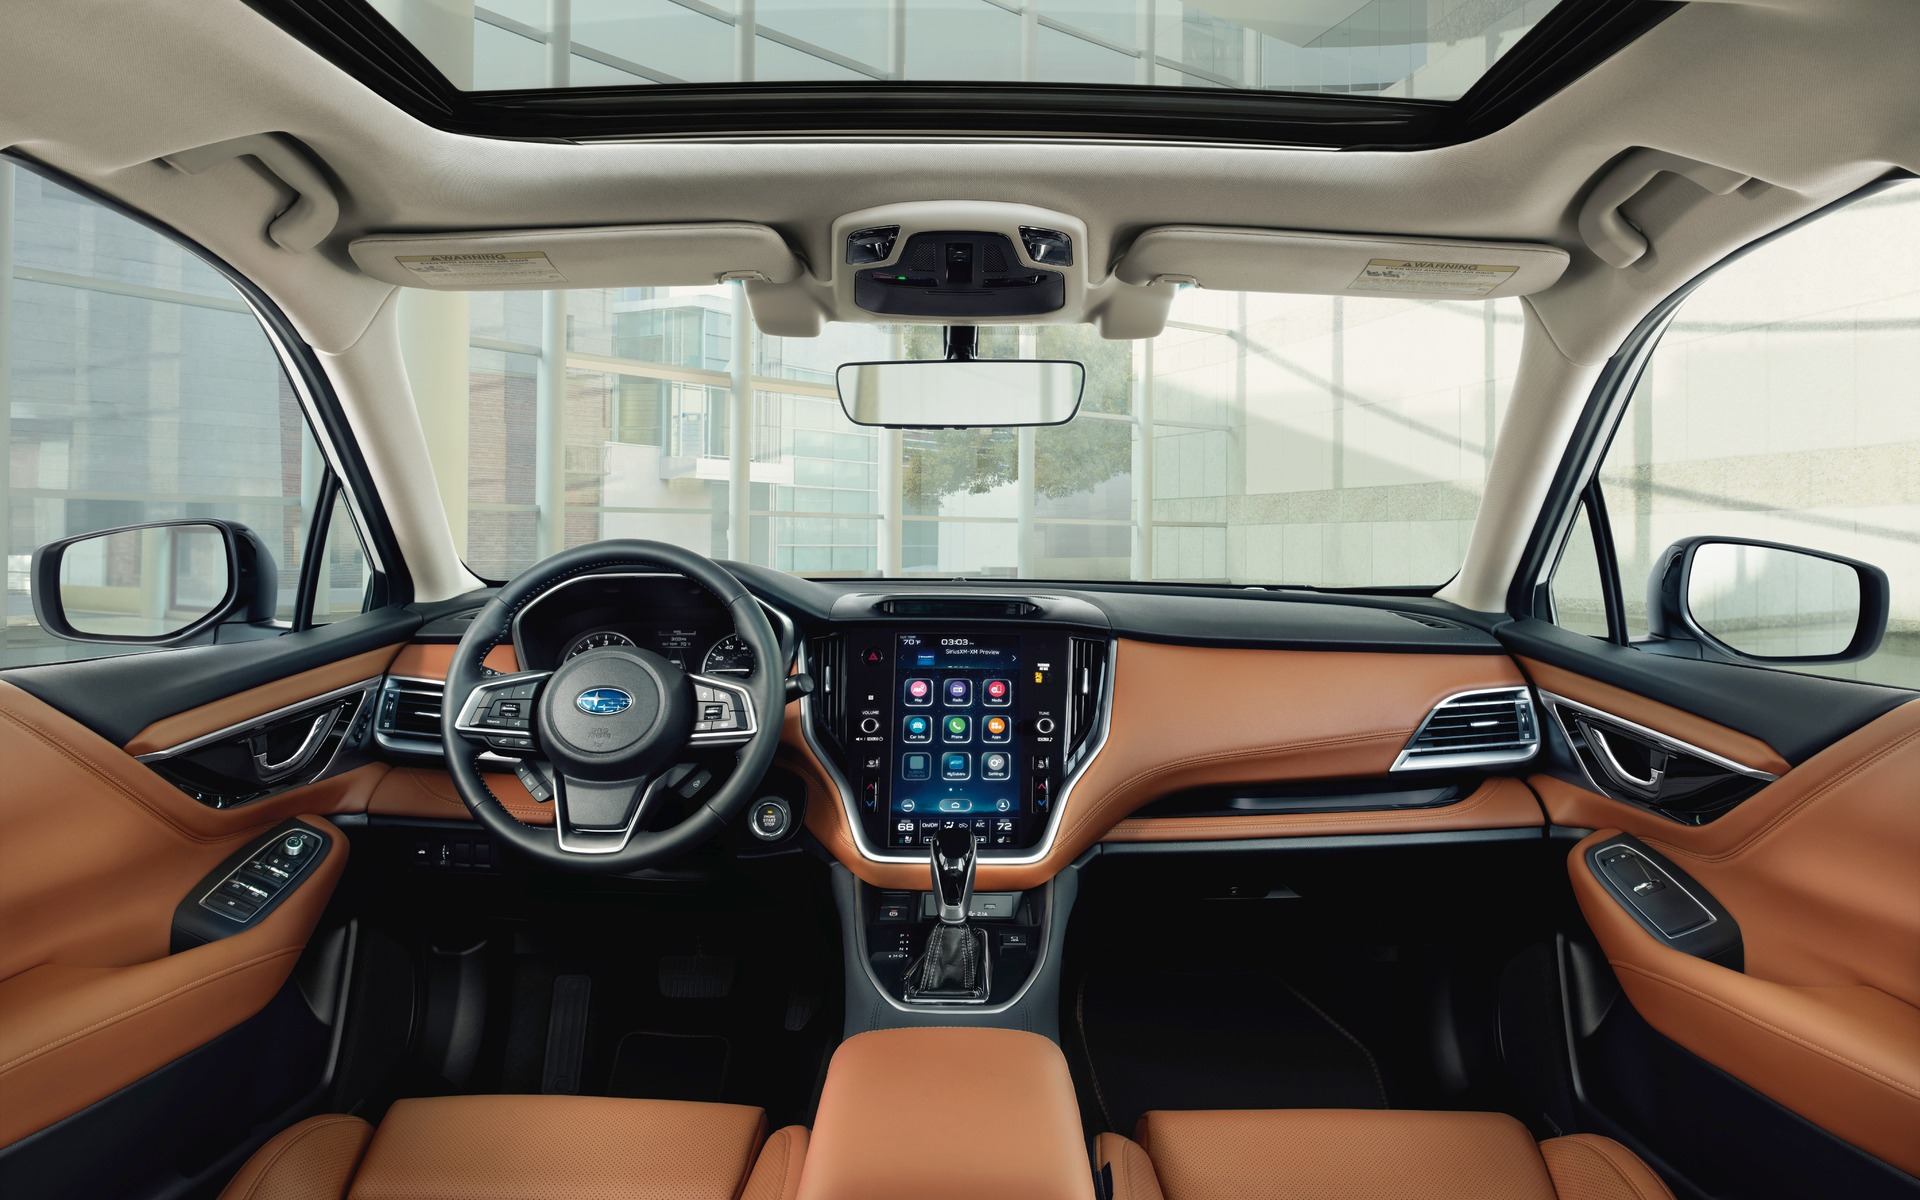 2020 Subaru Legacy and Outback Pricing is Announced - The